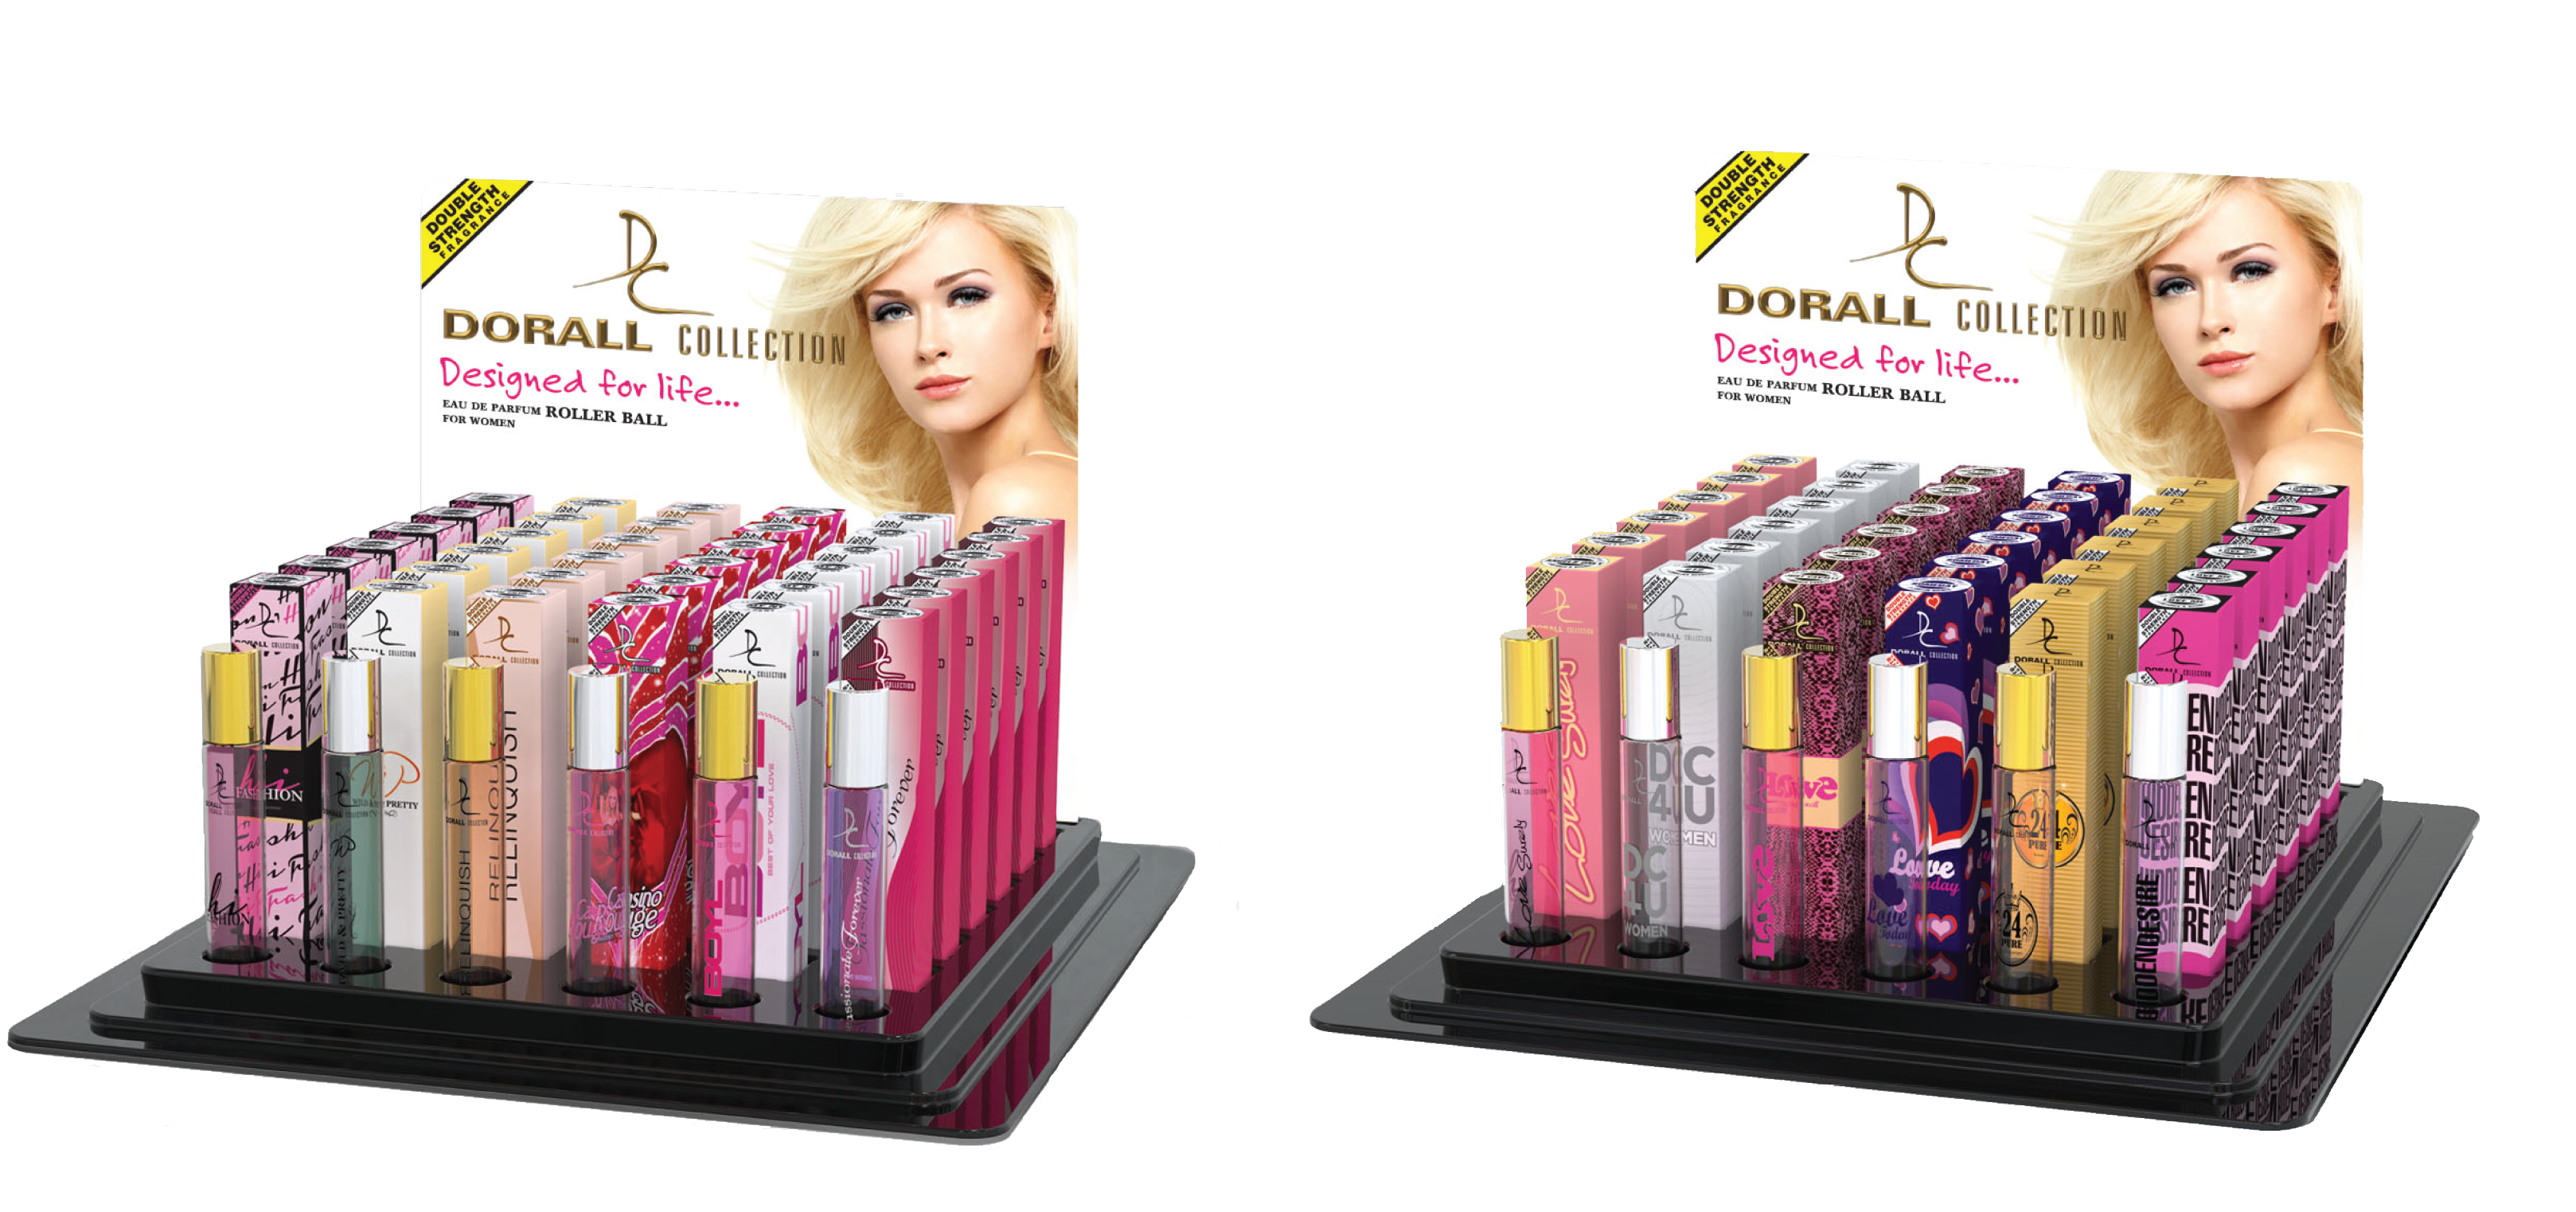 Dorall Collection Rollerballs 6x6 Display Trays by Arion Perfume & Beauty Inc.